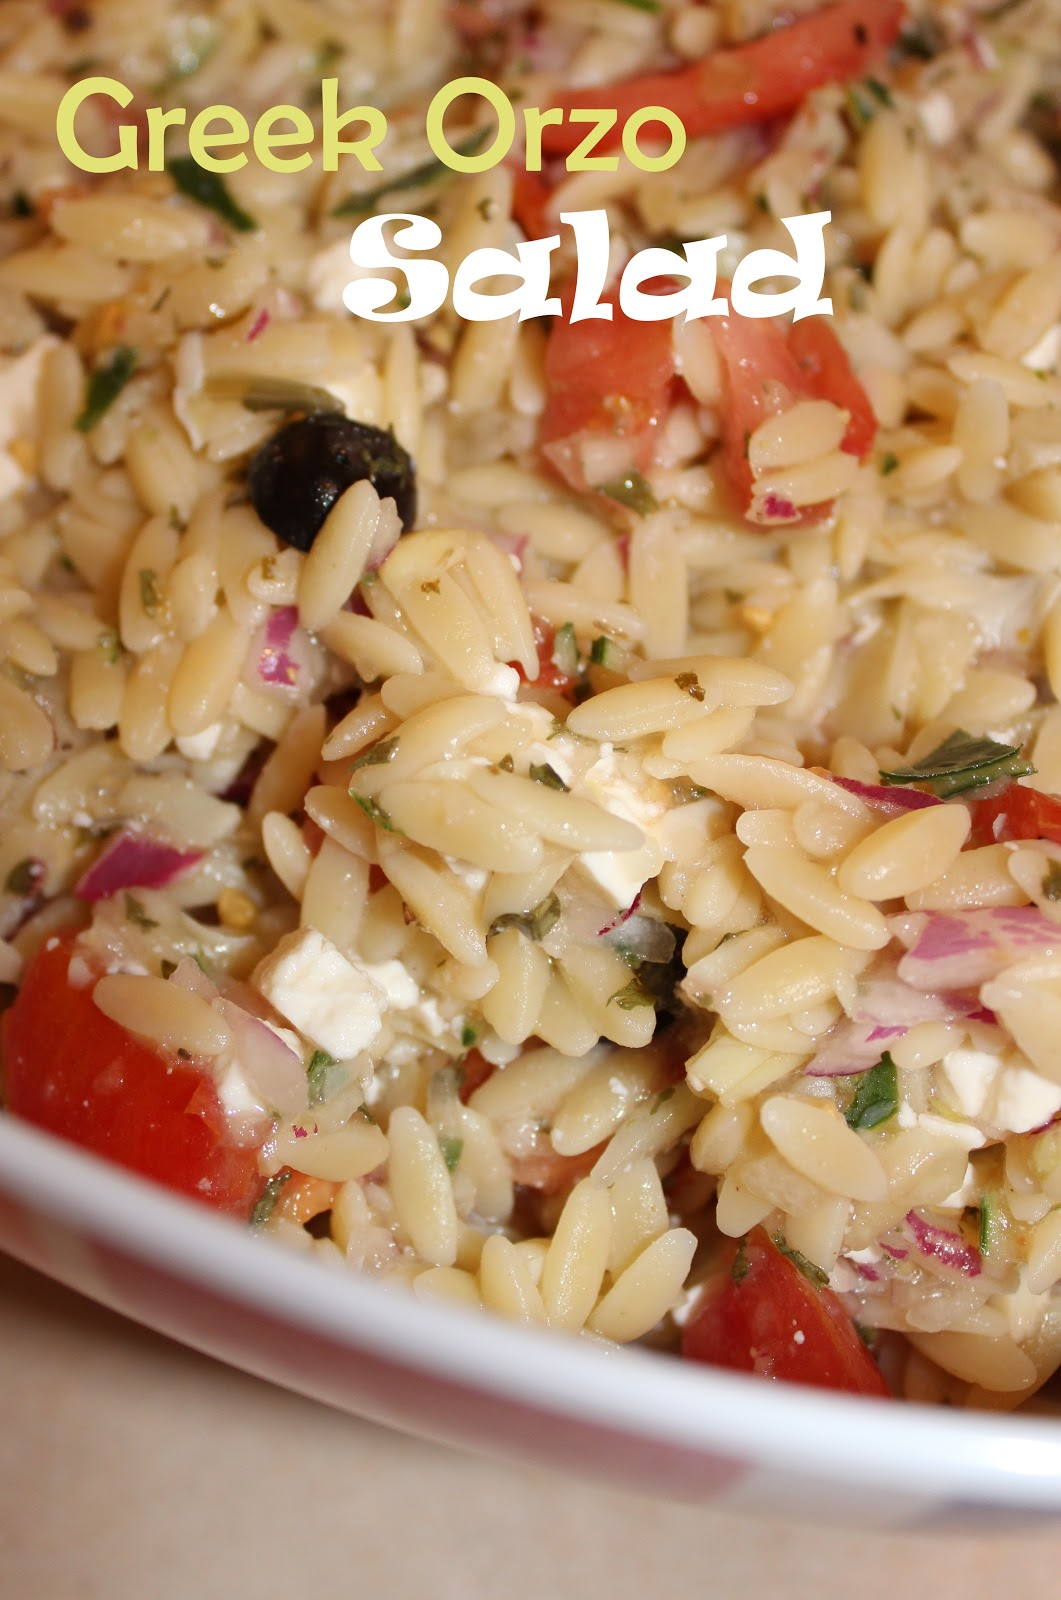 Harris Sisters GirlTalk: Greek Orzo Salad